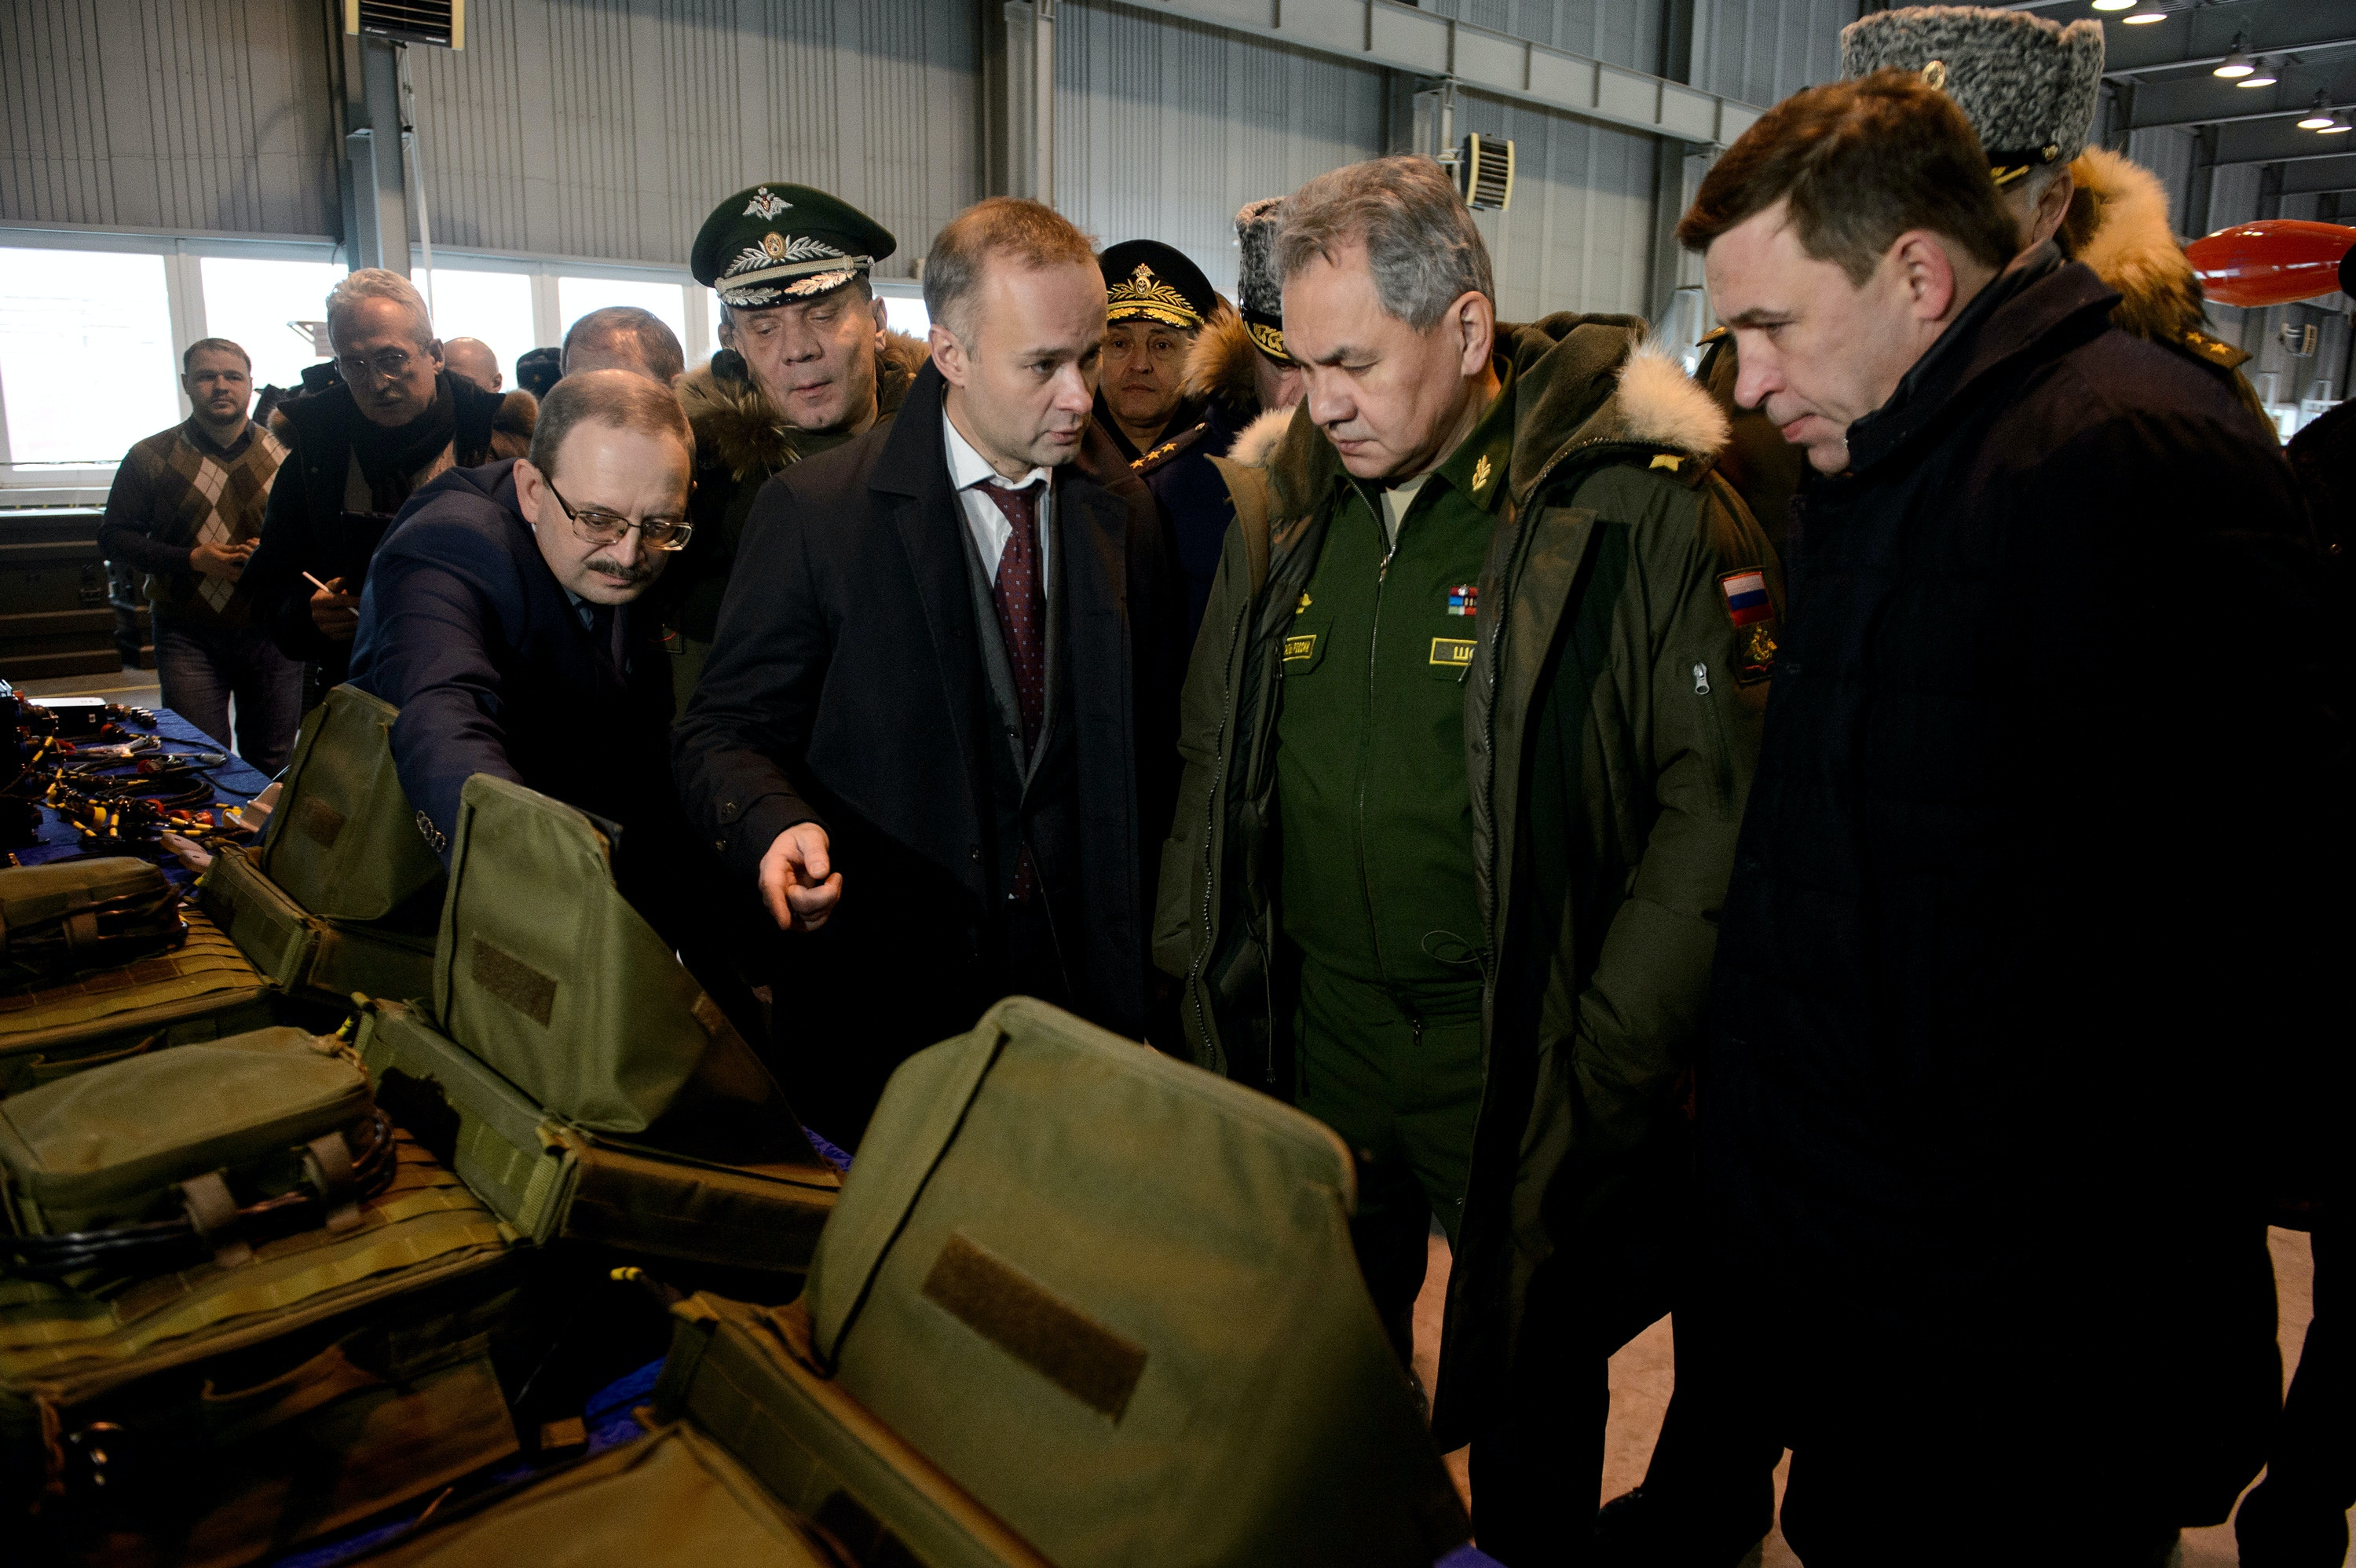 YEKATERINBURG, RUSSIA - JANUARY 20, 2017: Russia's minister of defence Sergei Shoigu (2nd R) and Sverdlovsk Region governor Yevgeny Kuivashev (R) examine the Forpost complex of UAVs (drones) for reconnaissance and target designation, at Ural Works of Civil Aviation (UWCA). UWCA can start supplying Forpost UAVs in 2019. Donat Sorokin/TASS